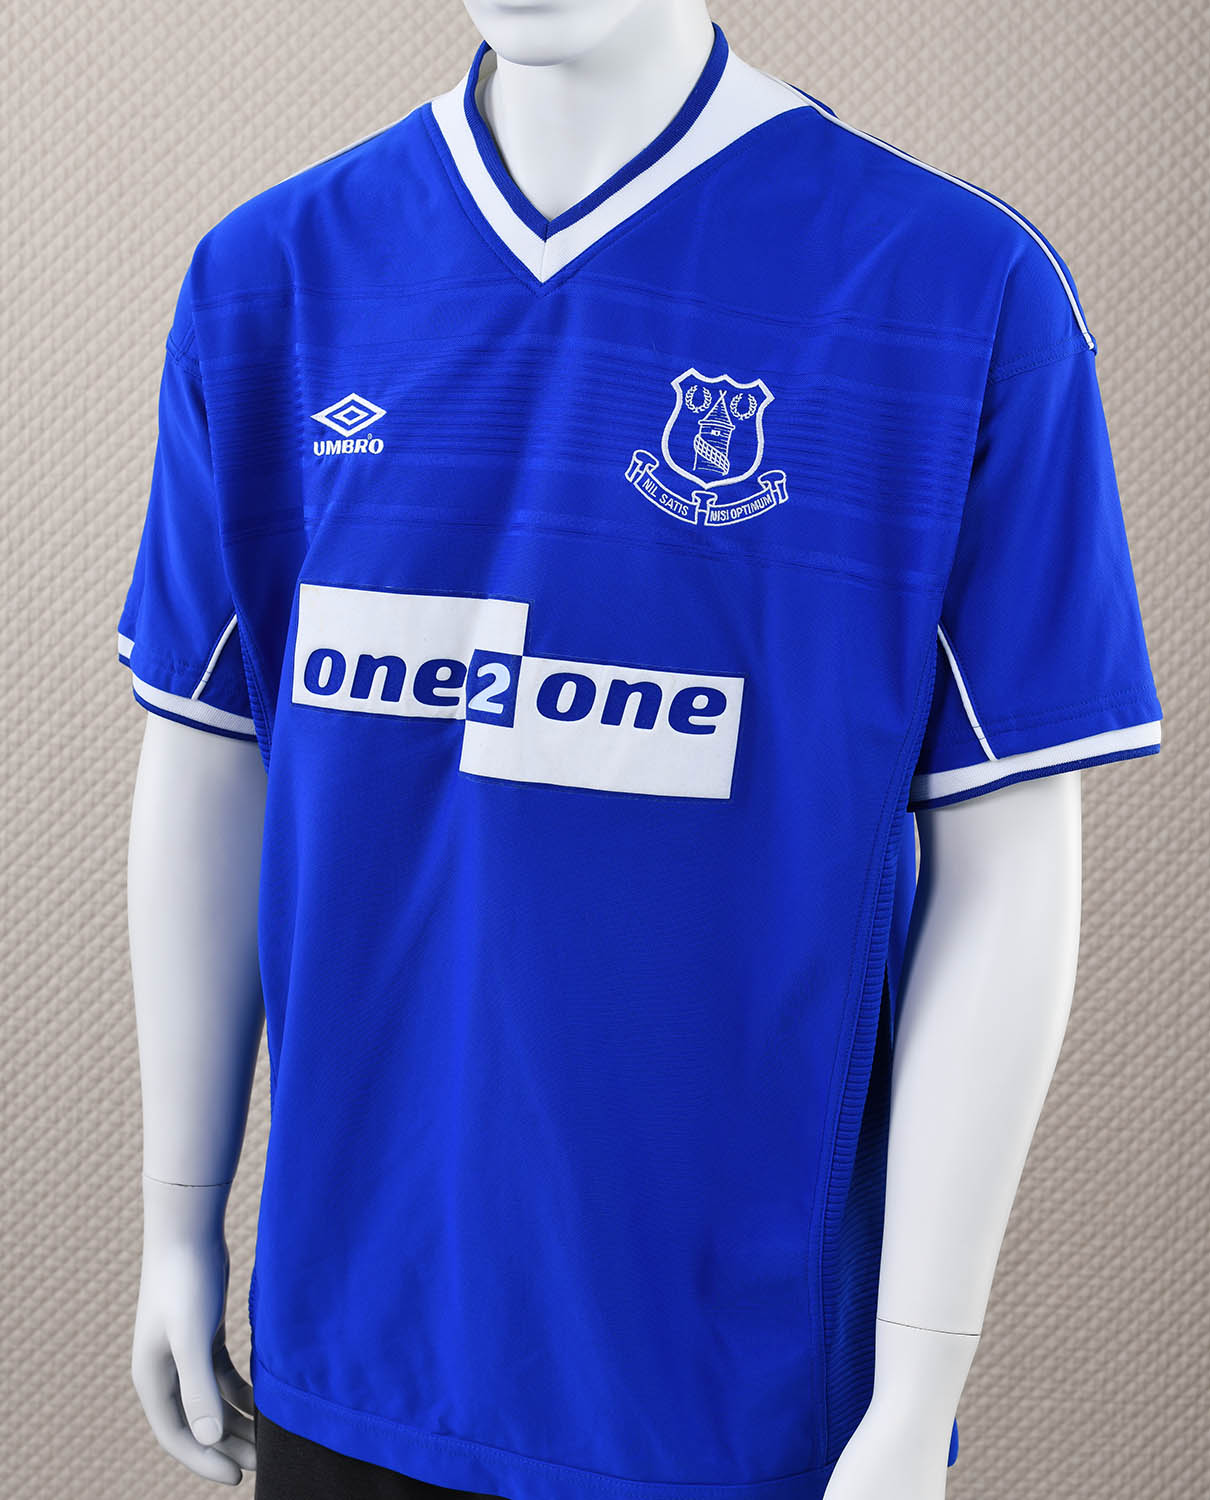 check out 76aa6 c92a1 Everton Soccer Jersey